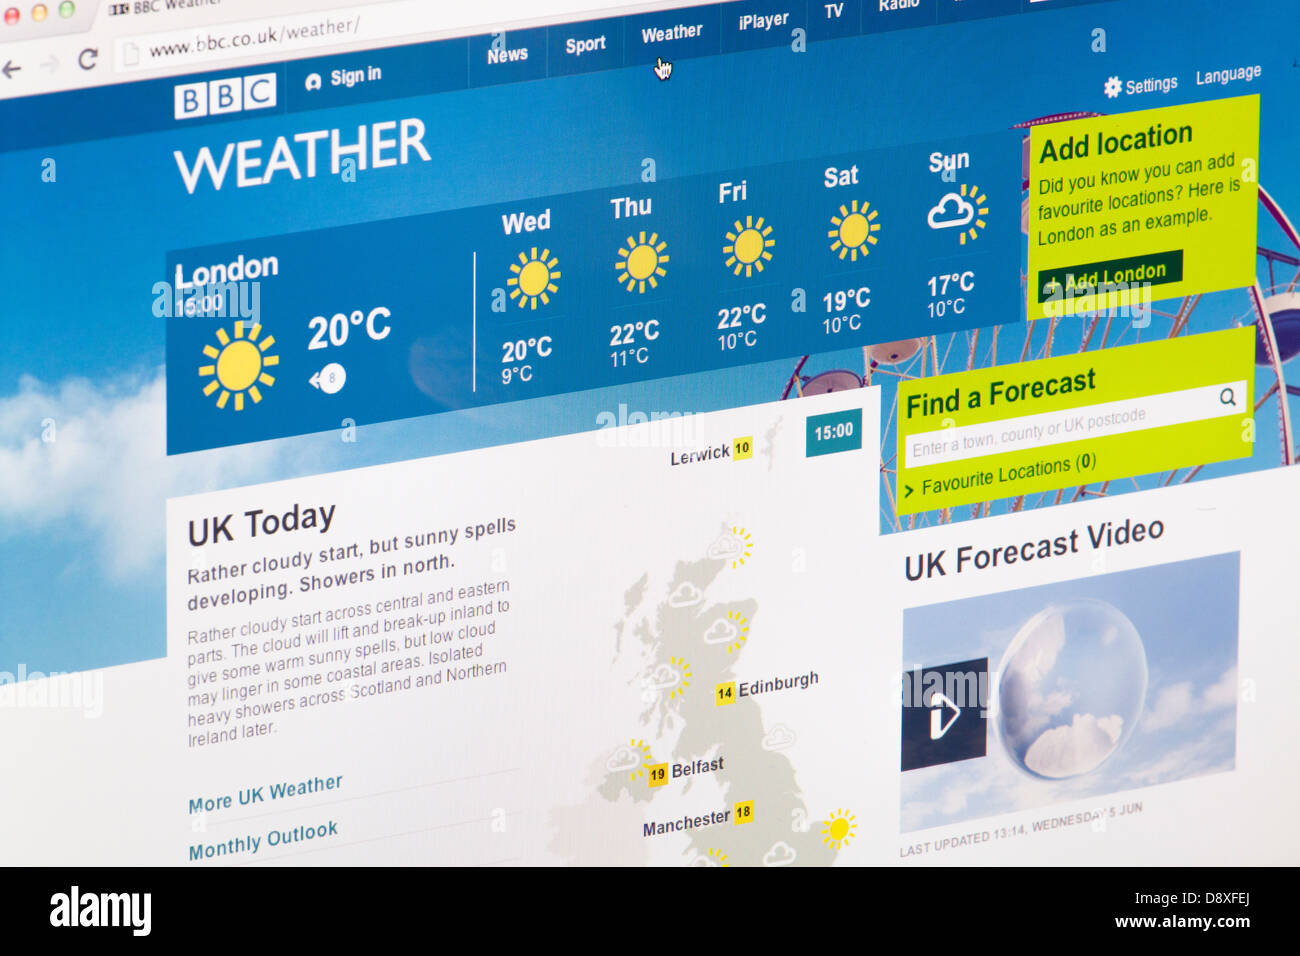 BBC Weather Home Page Website or web page on a laptop screen or computer monitor - Stock Image